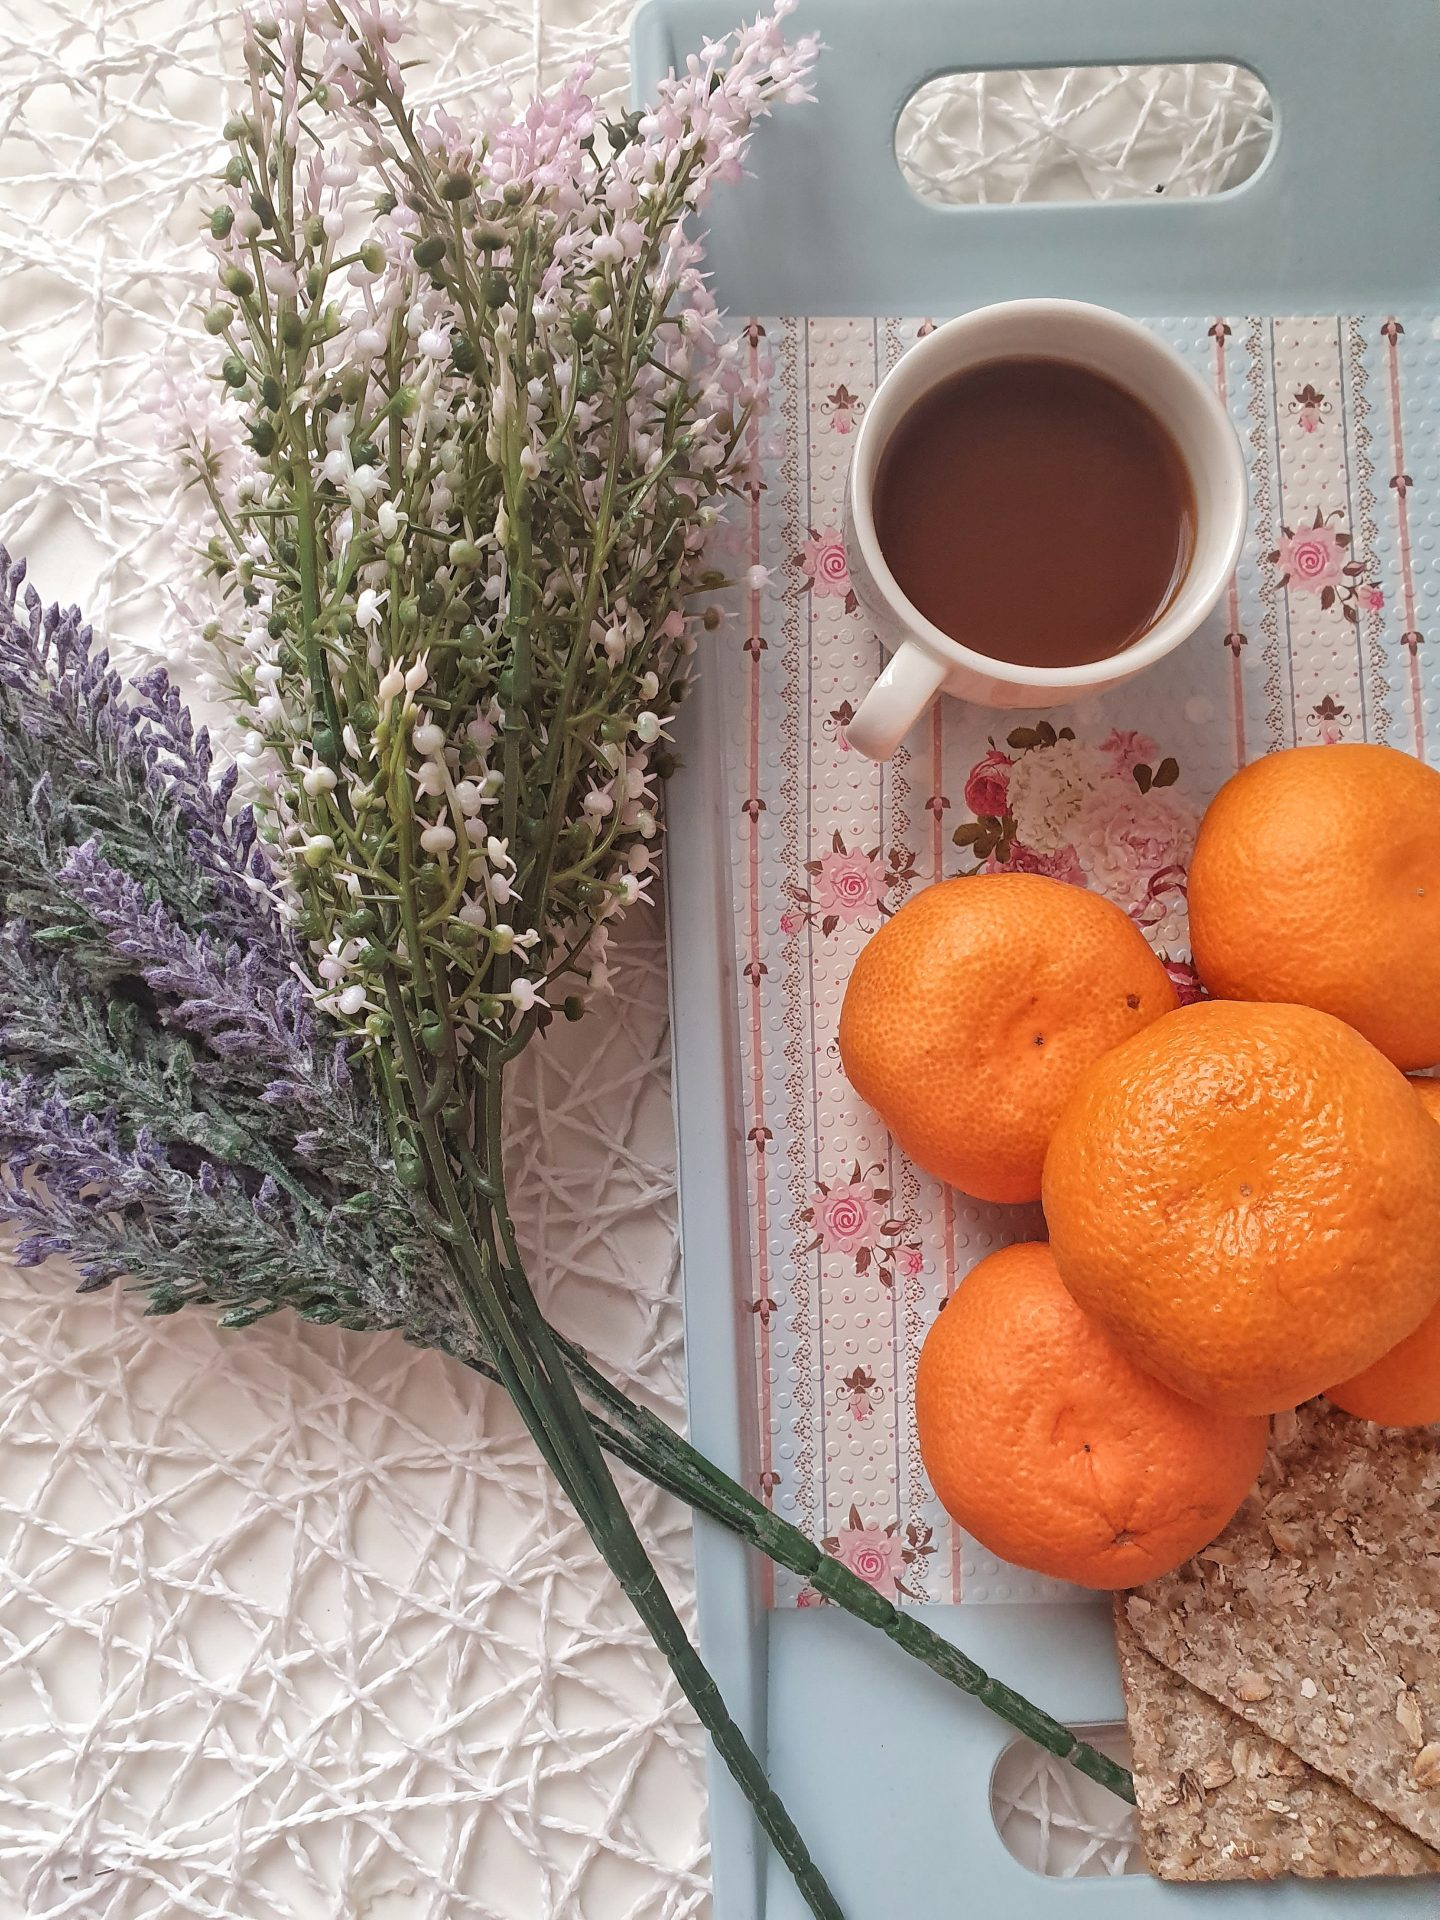 5 Ways I'm Staying Healthy At Home